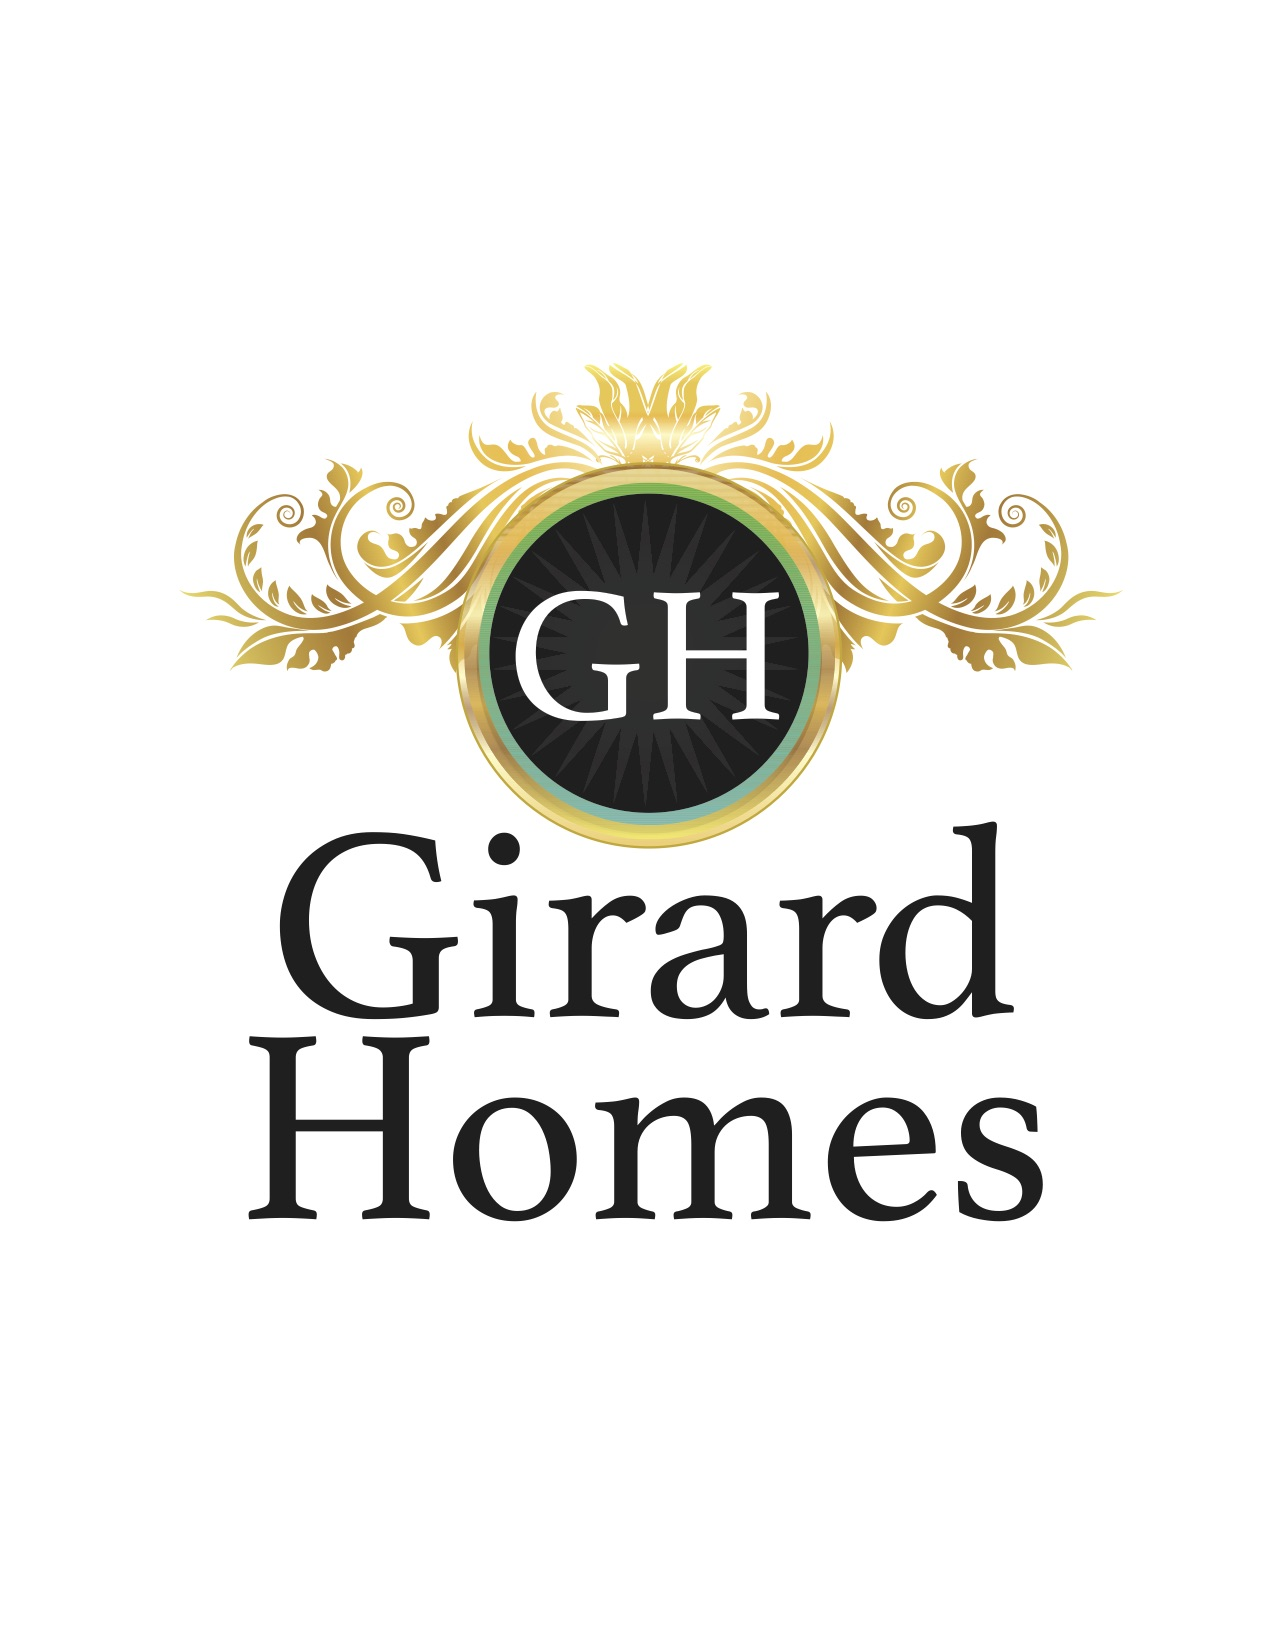 Girard Homes: Building The Future of New Homes Today